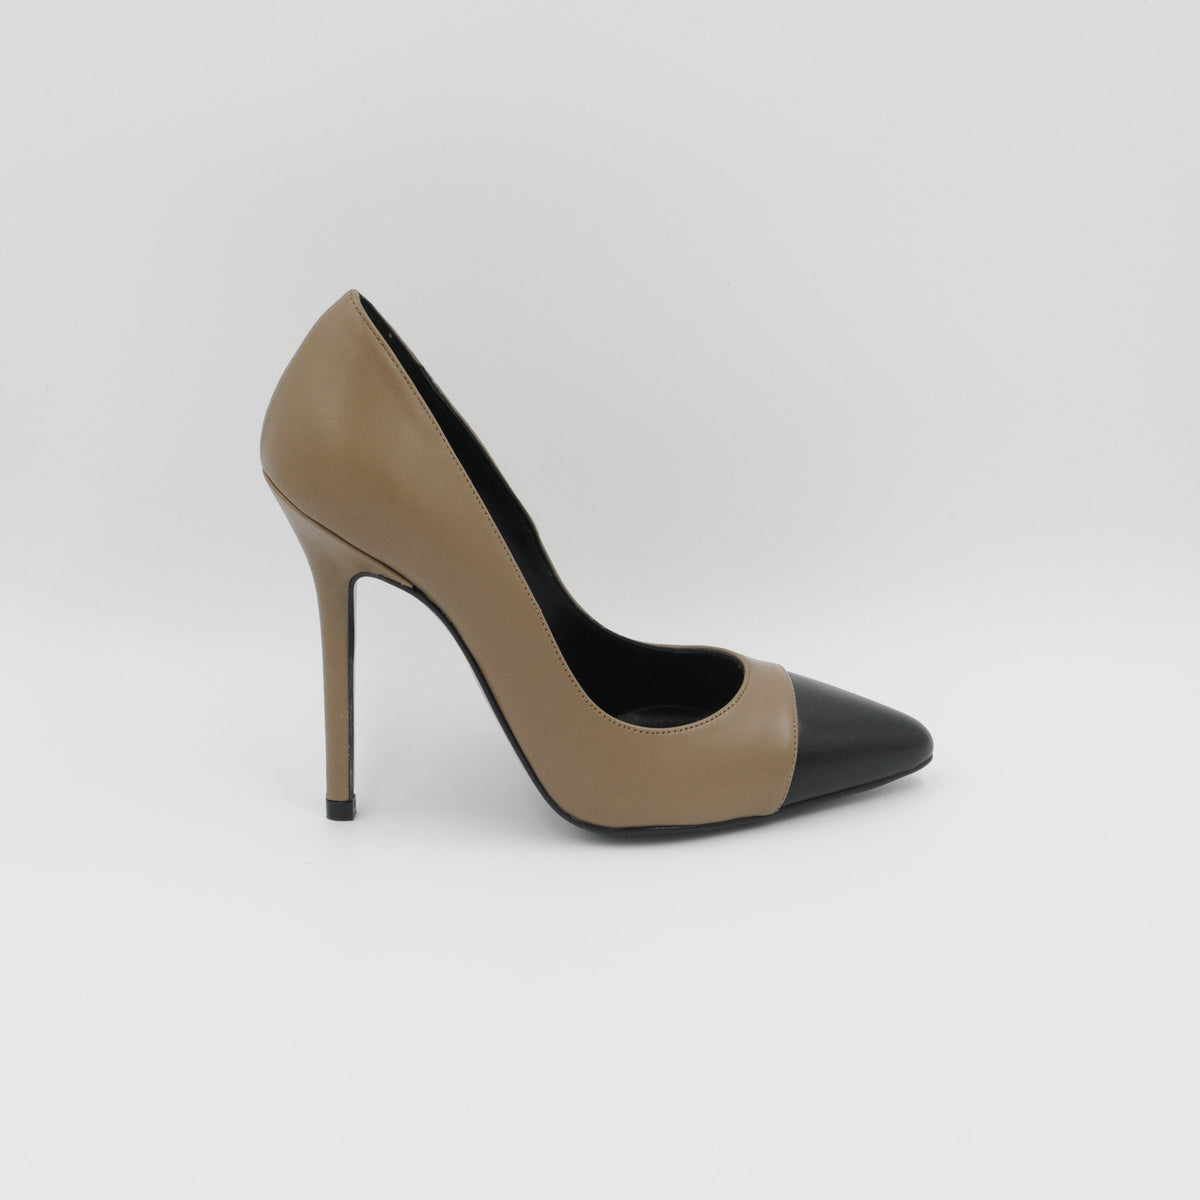 Lola Domecq Martina In Beige Hand made leather heel